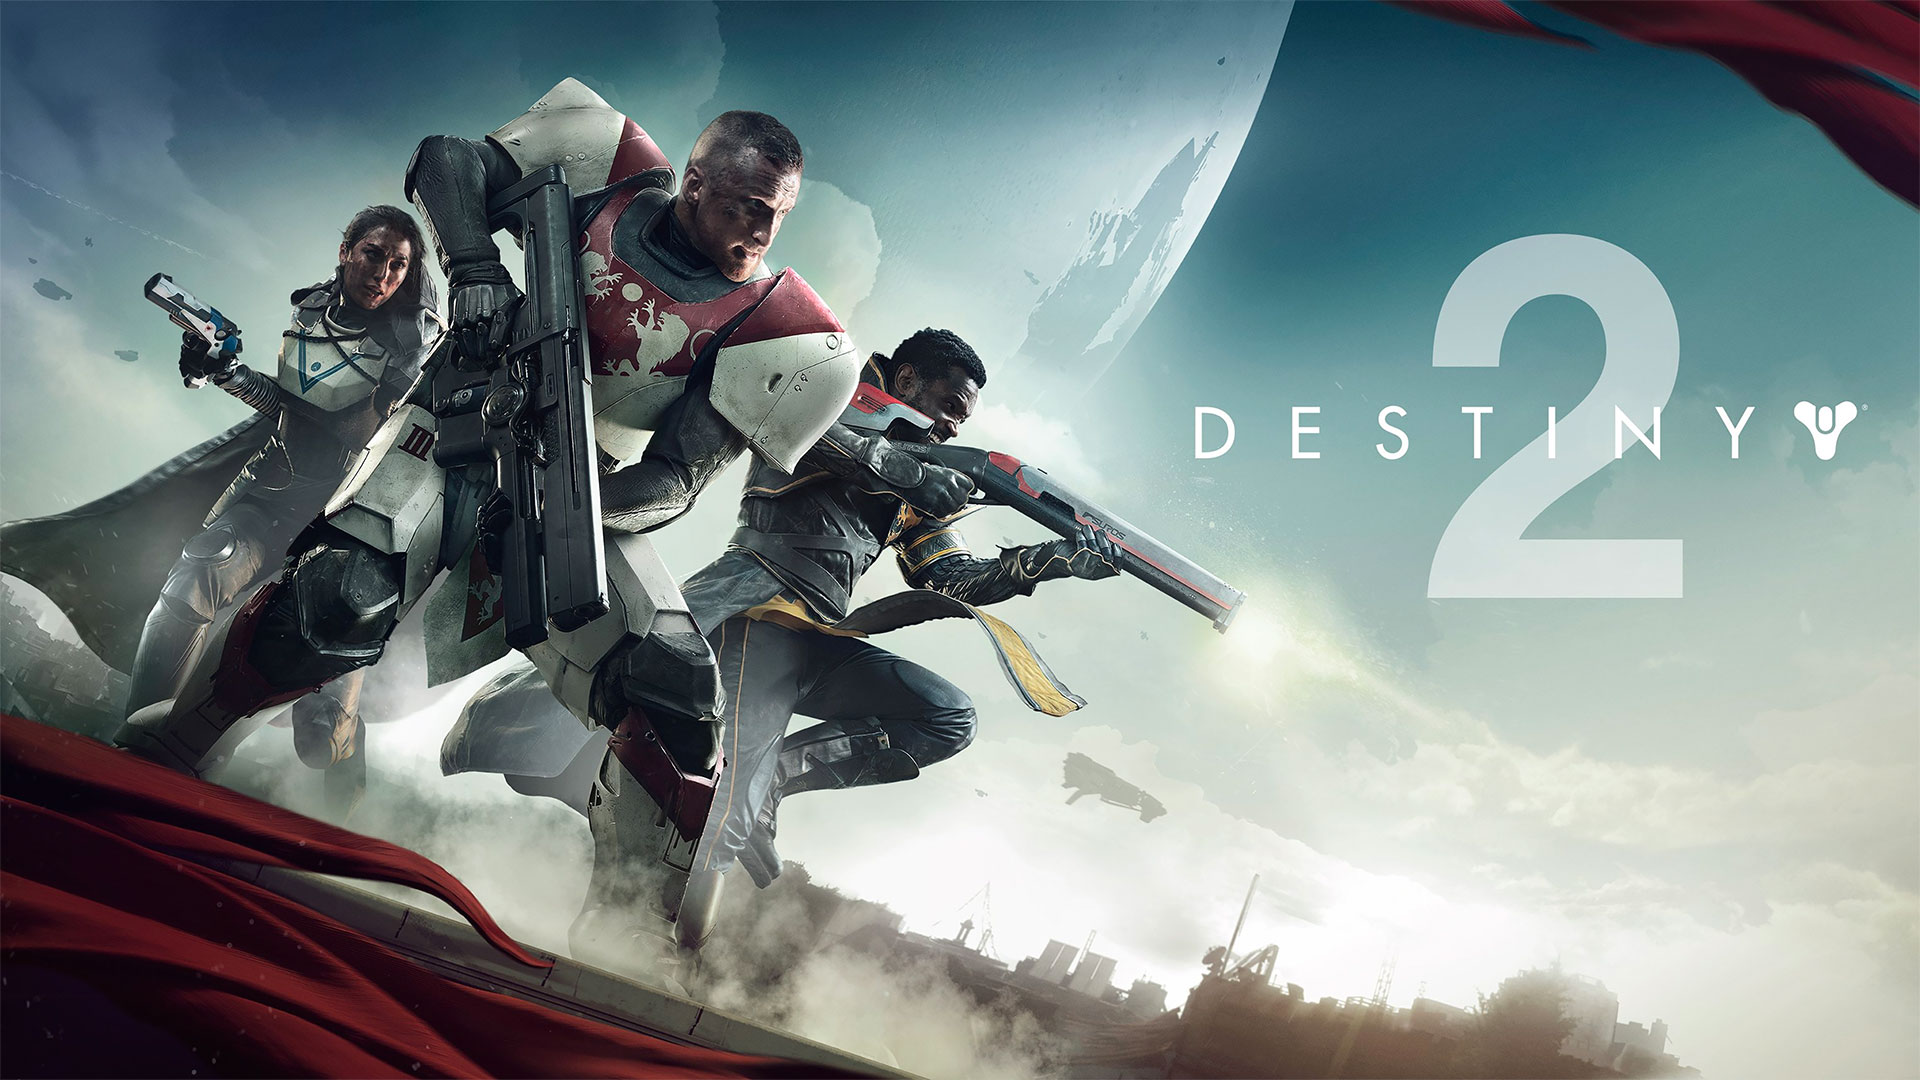 Destiny 2 Wallpaper 1920x1080: Destiny 2 Wallpapers In Ultra HD